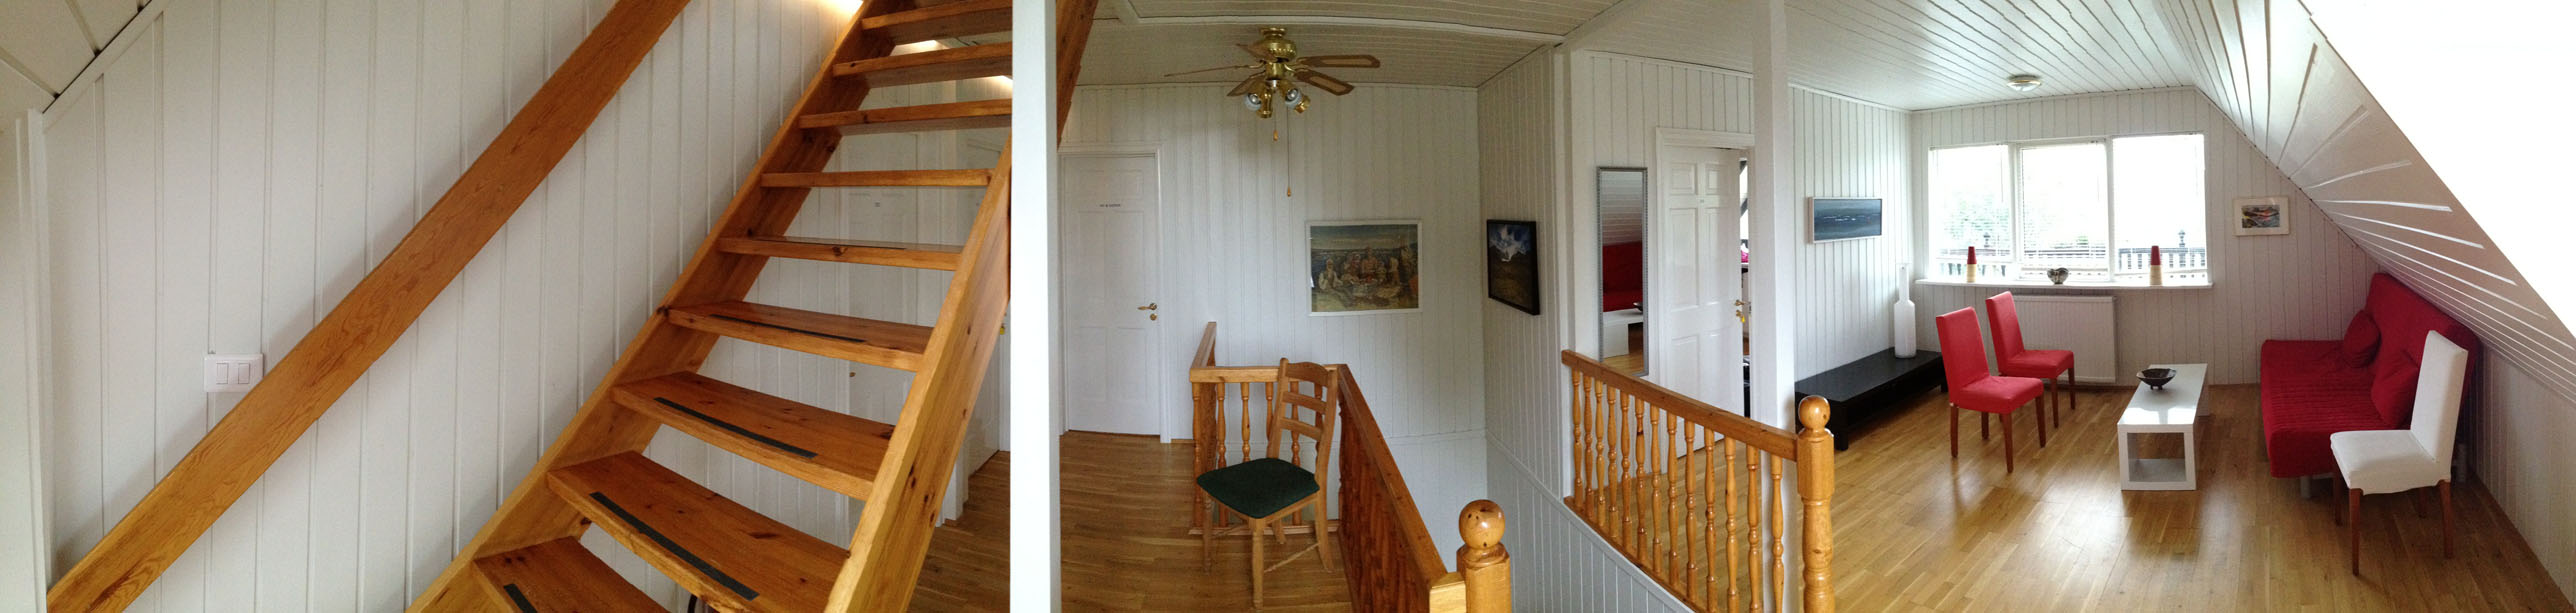 Unser Guesthouse in Selfoss